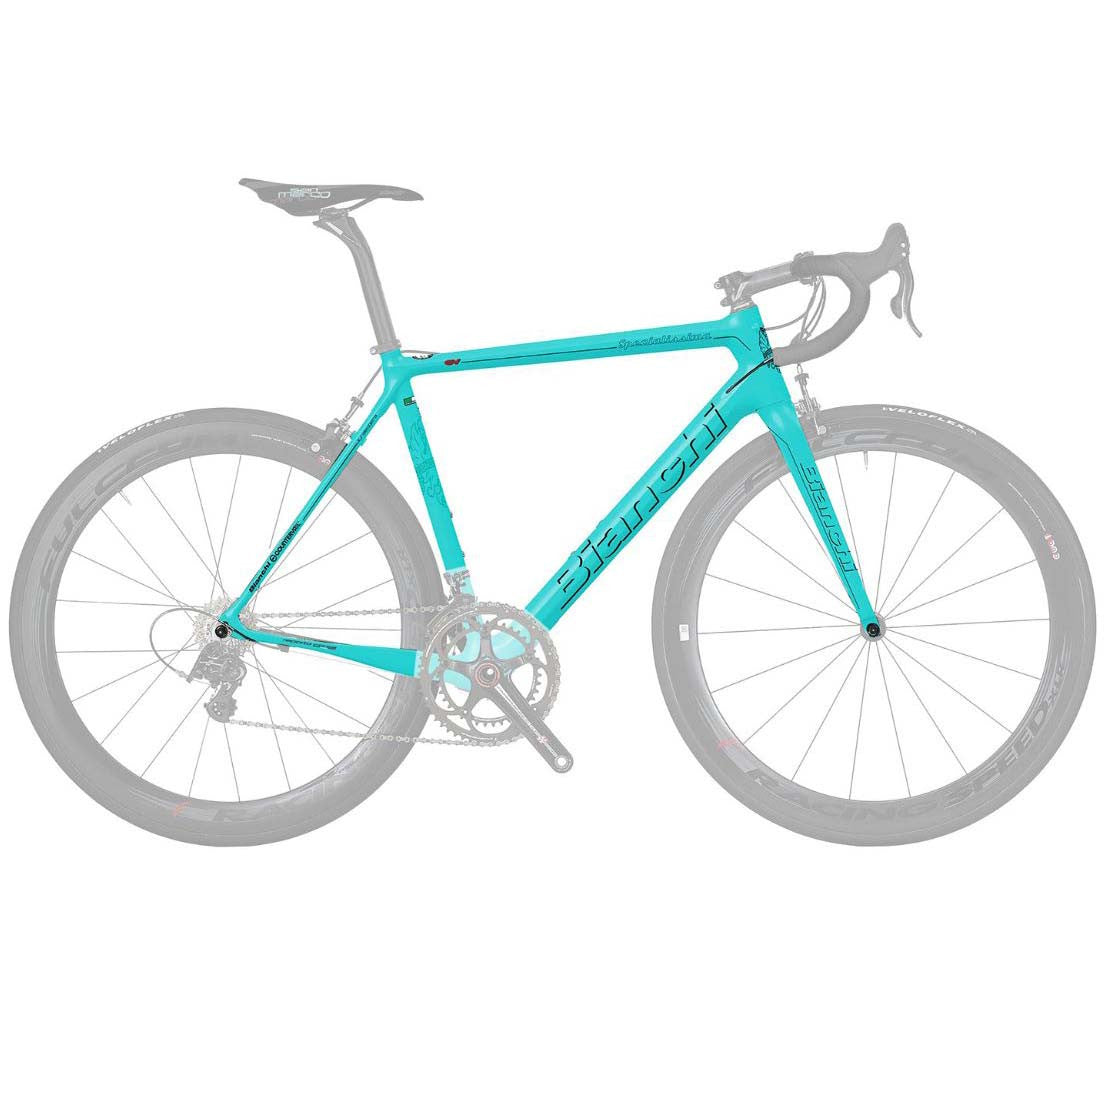 Bianchi Specialissima Dura Ace 11sp 50/34